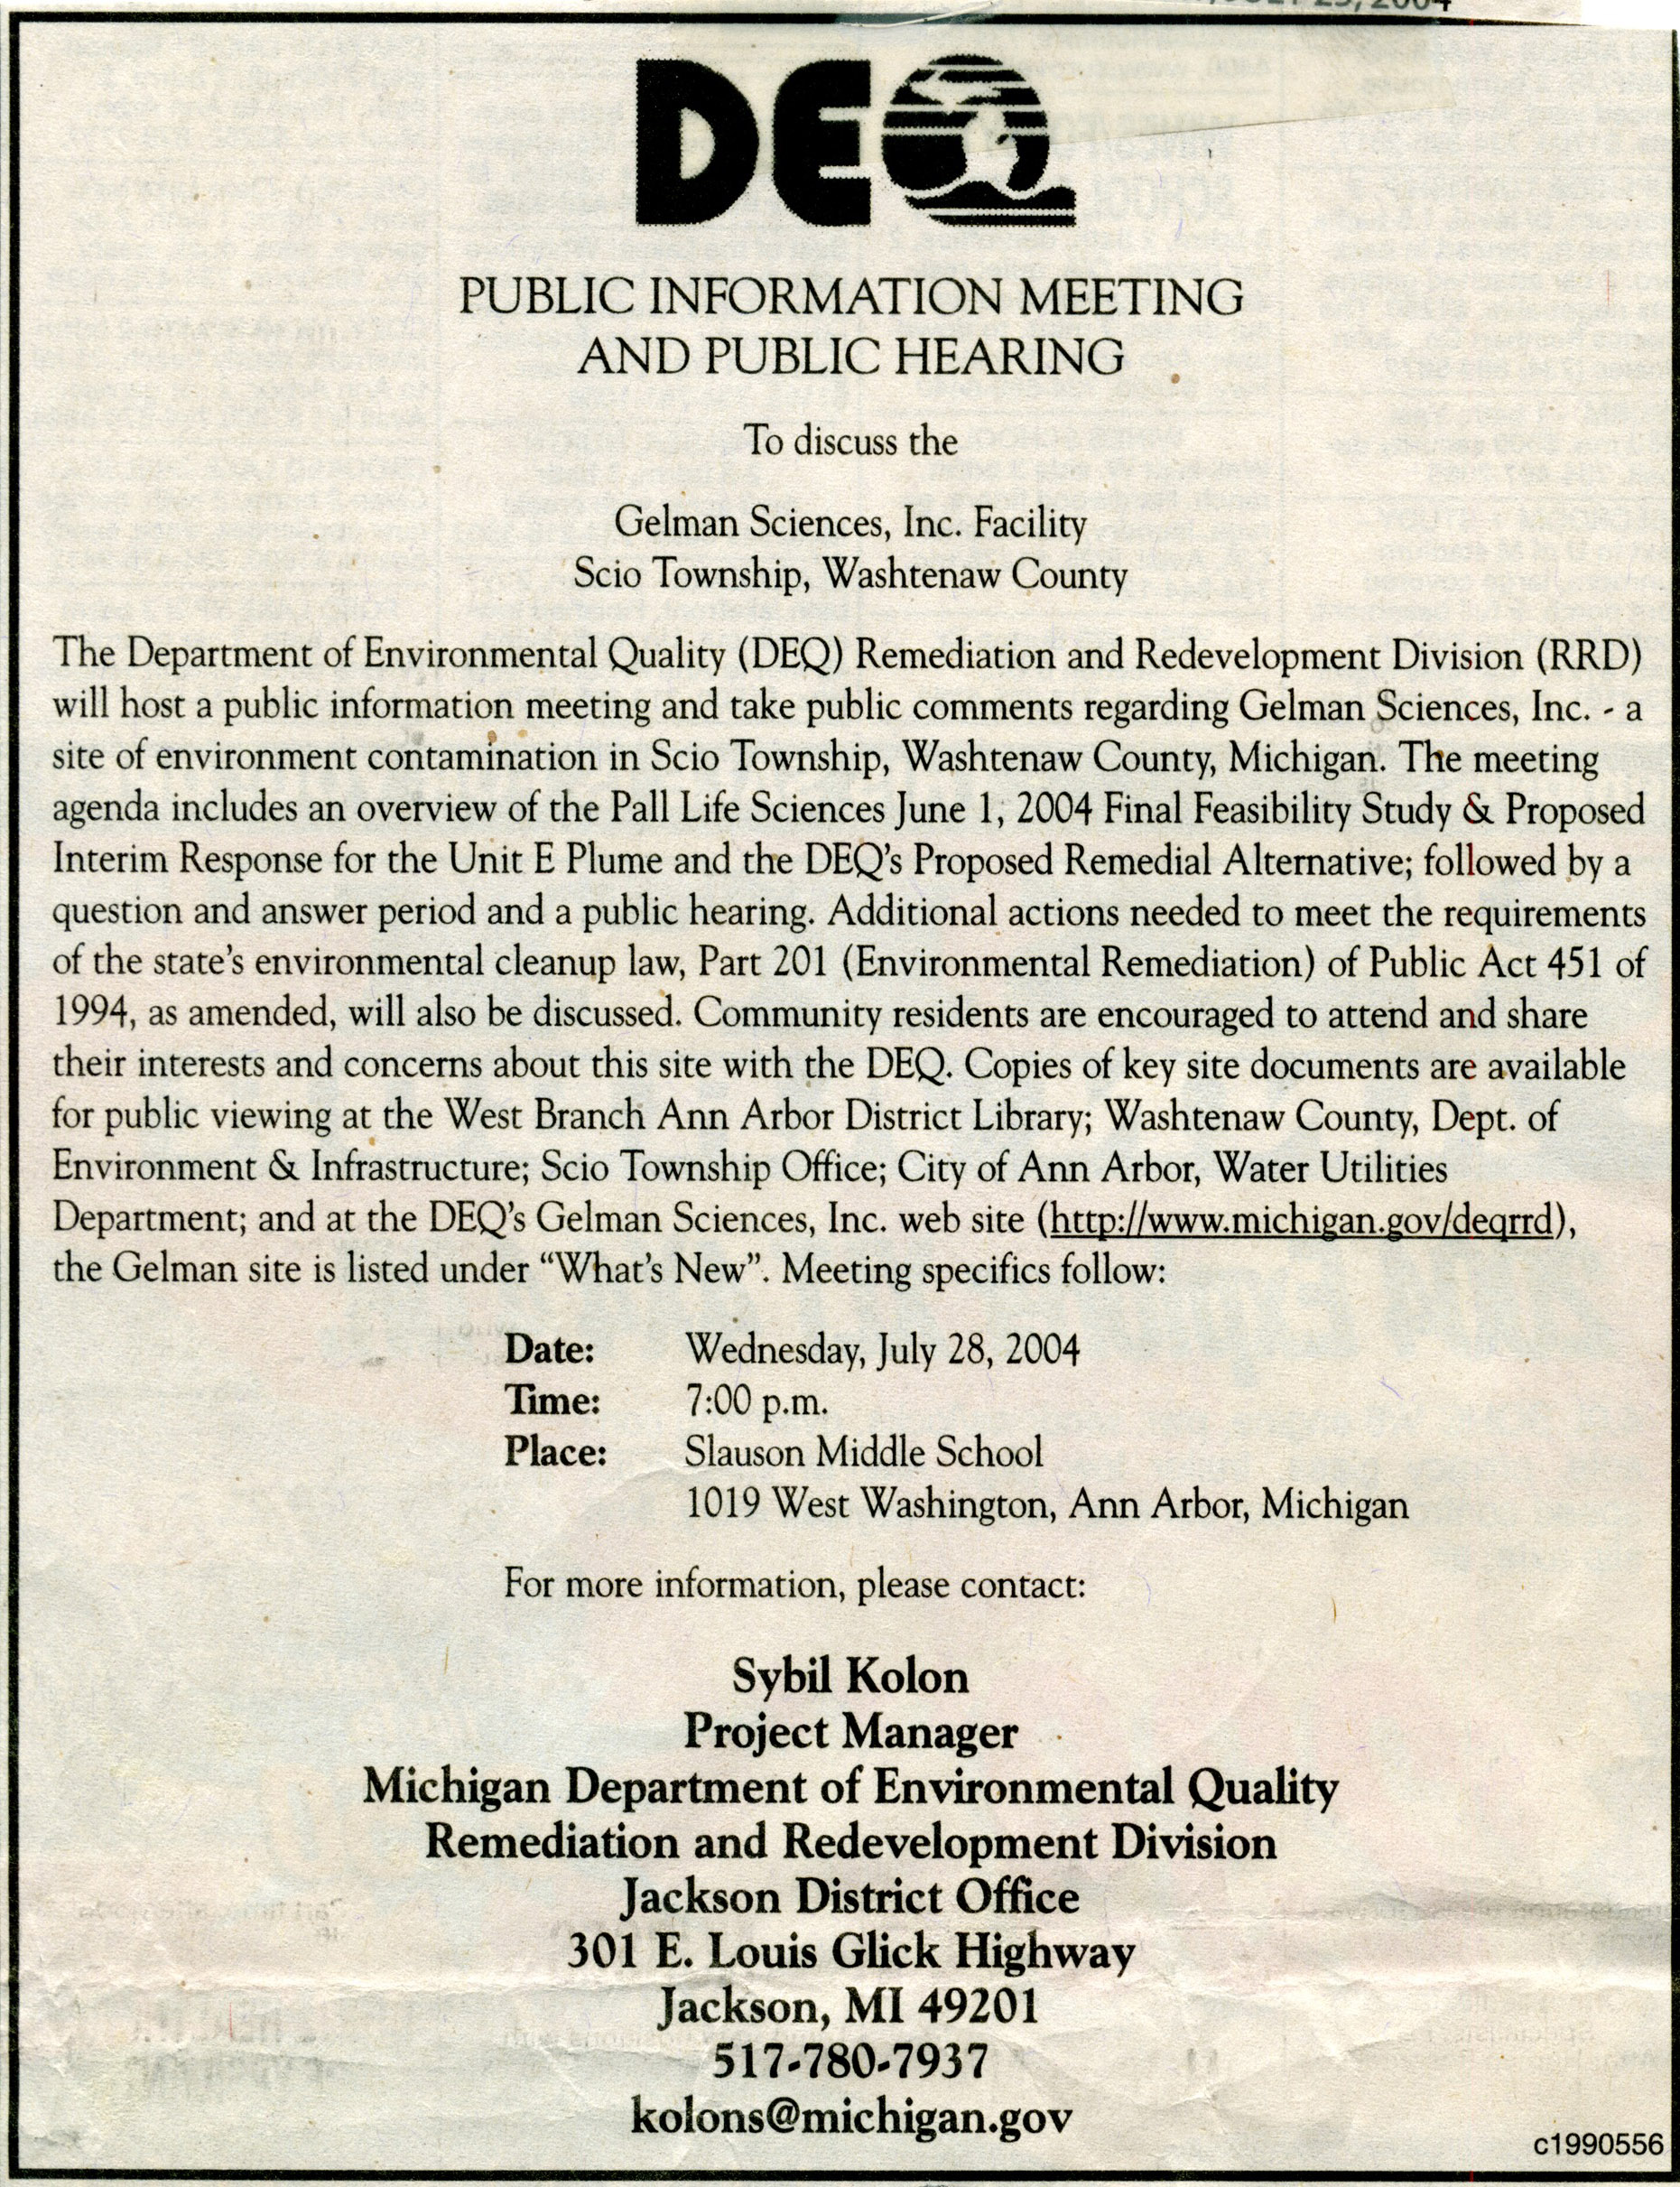 DEQ Public Information Meeting And Public Hearing image